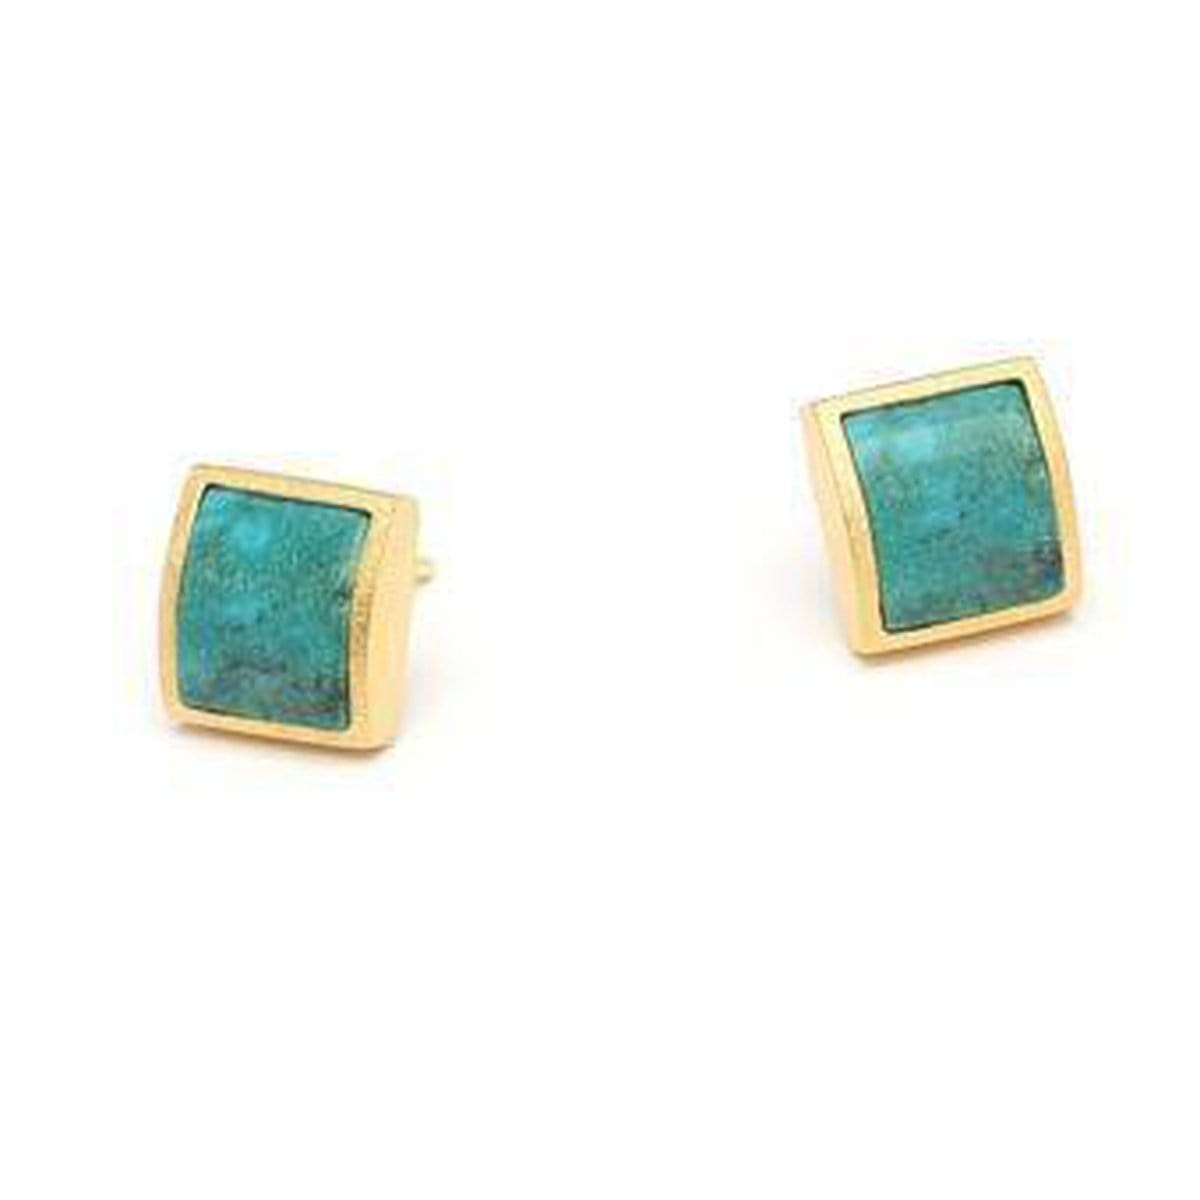 Colina Turquoise Earrings - 19229256 - Bernd Wolf